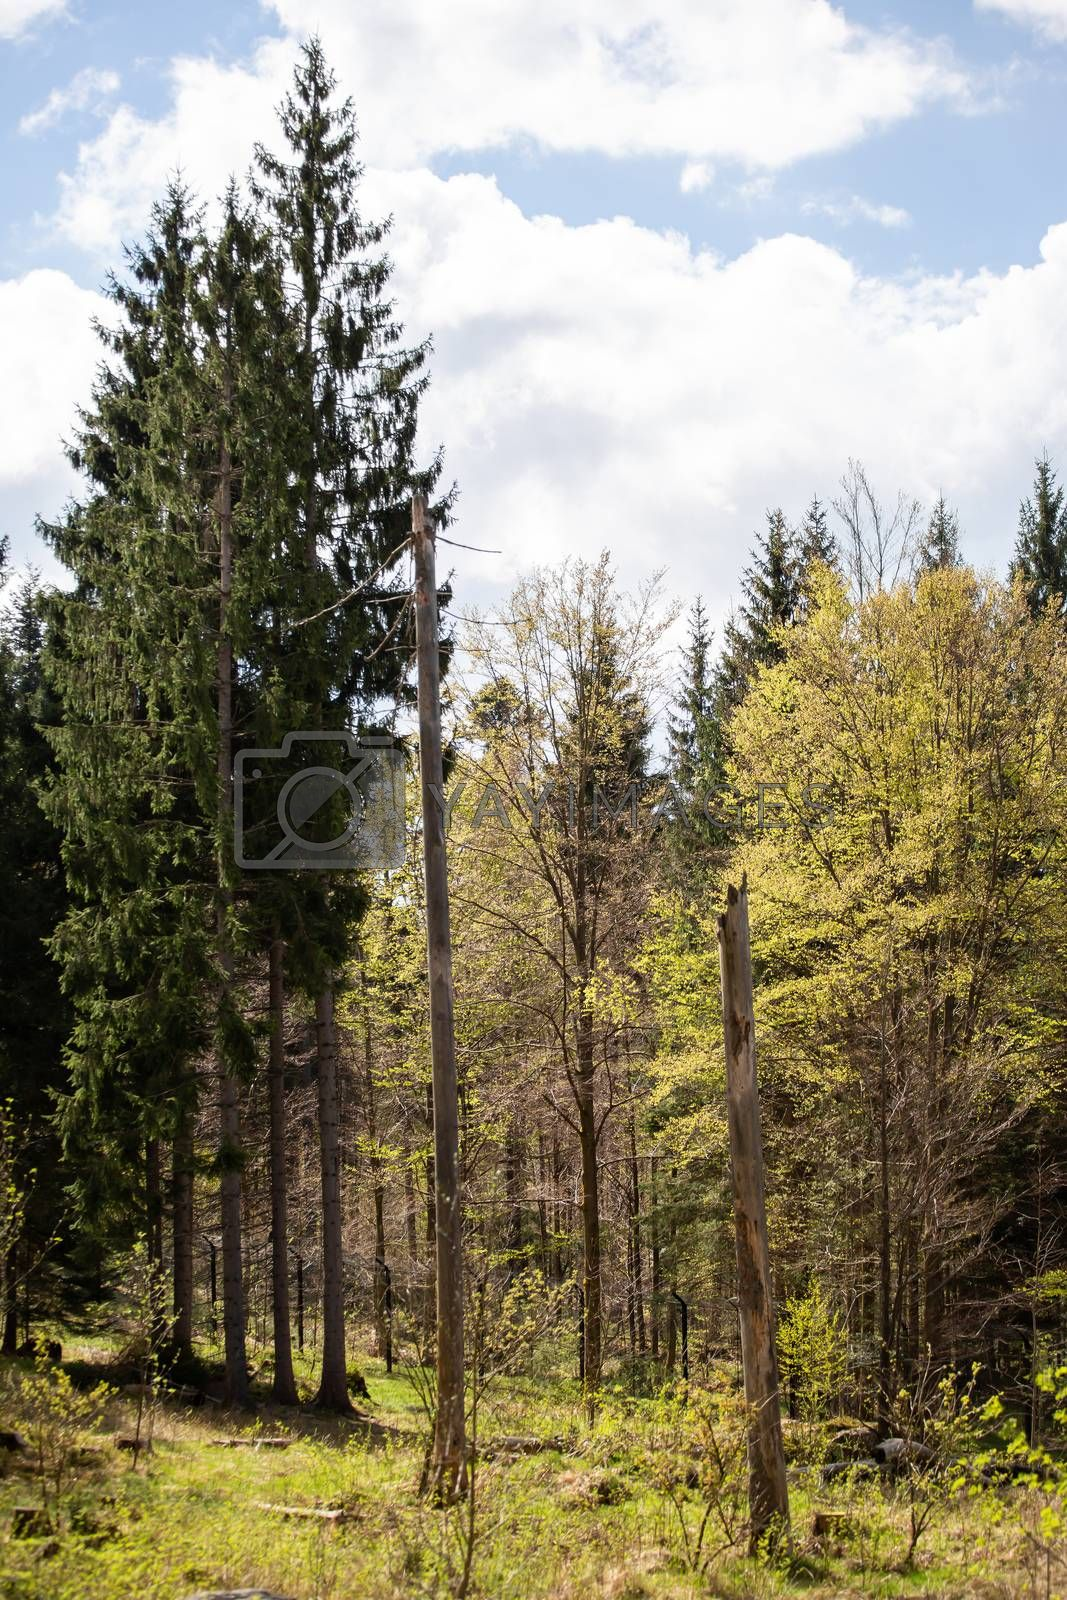 Landscape picture from the national park in Bavaria by Sandra Fotodesign